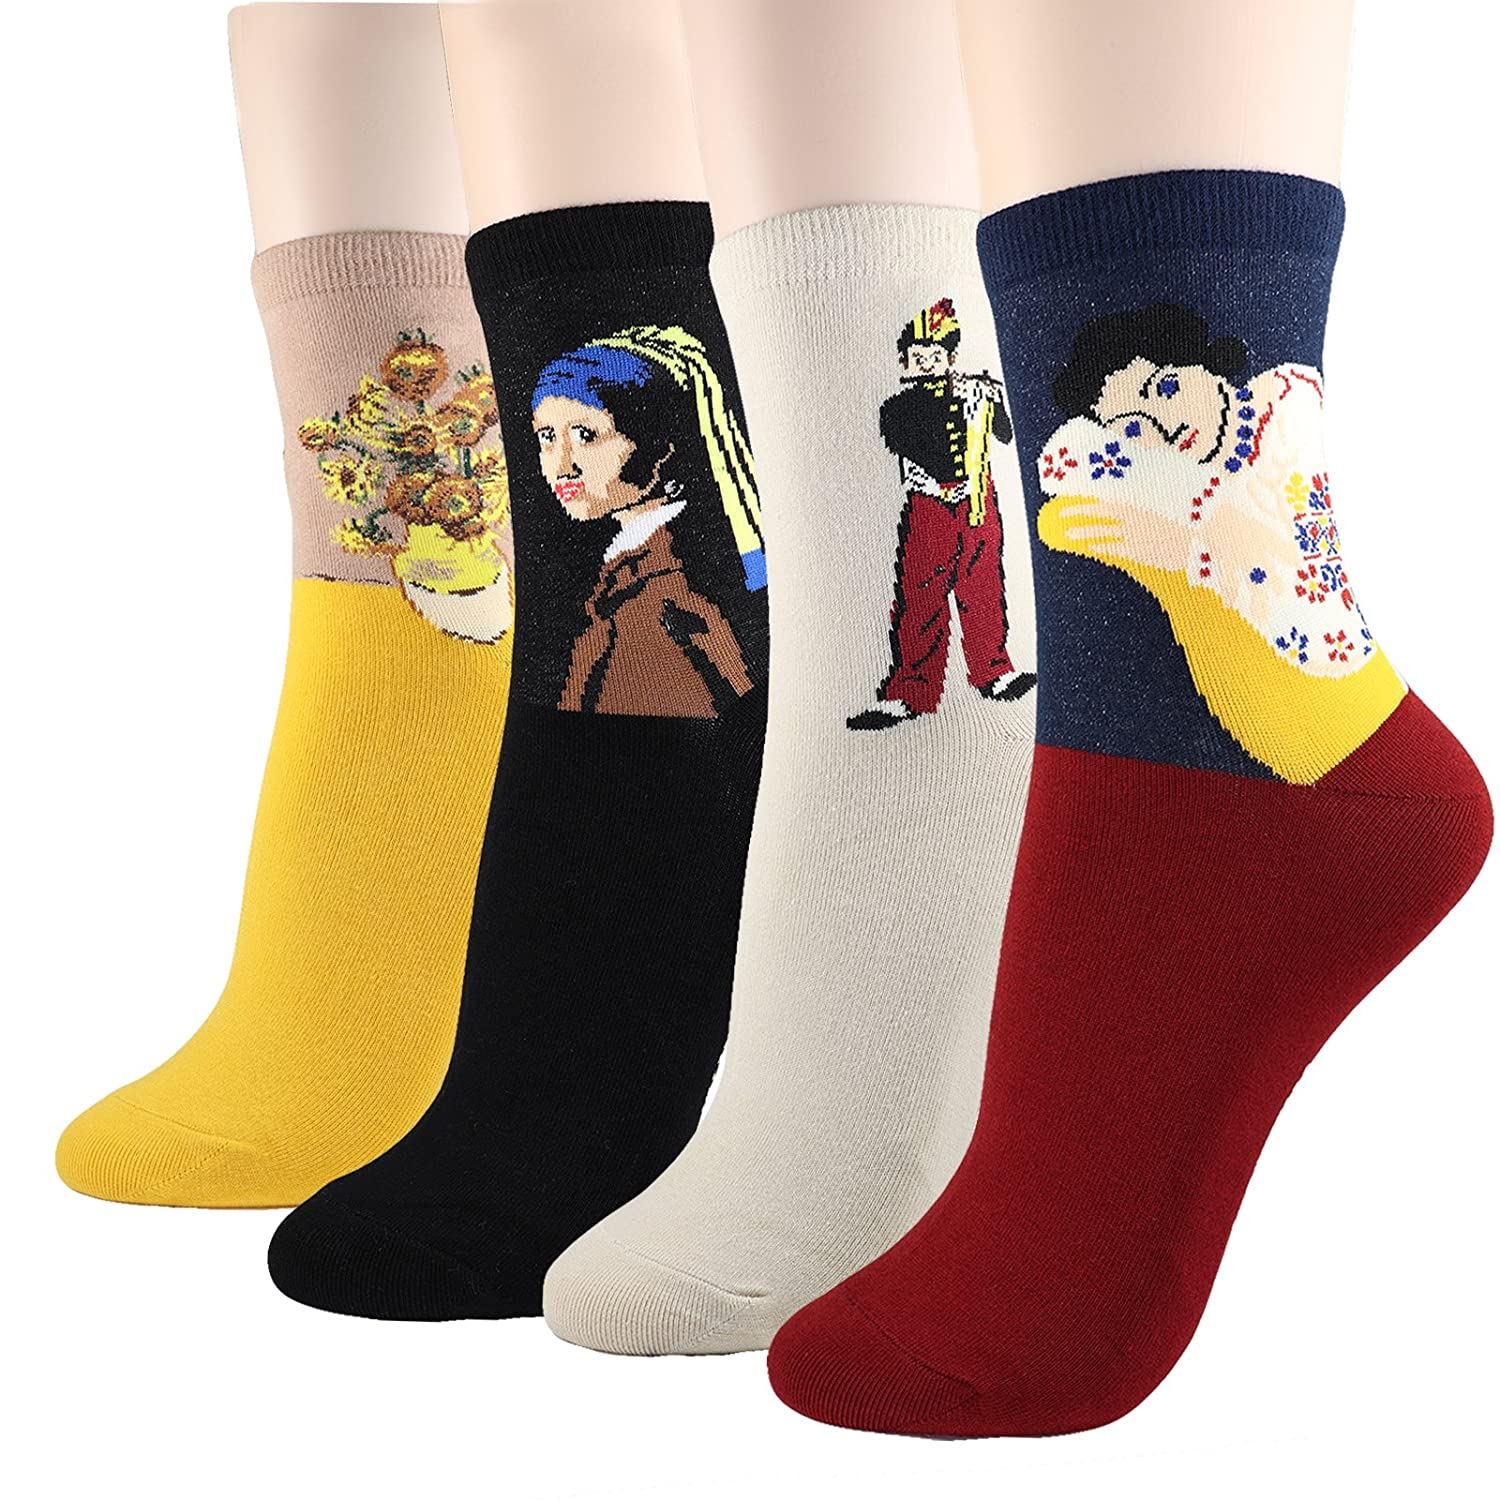 DearMy Womens Famous Cartoon Japanese Animation Print Casual Cotton Blend Crew Socks | Art Patterned| Fancy Design Crew Socks